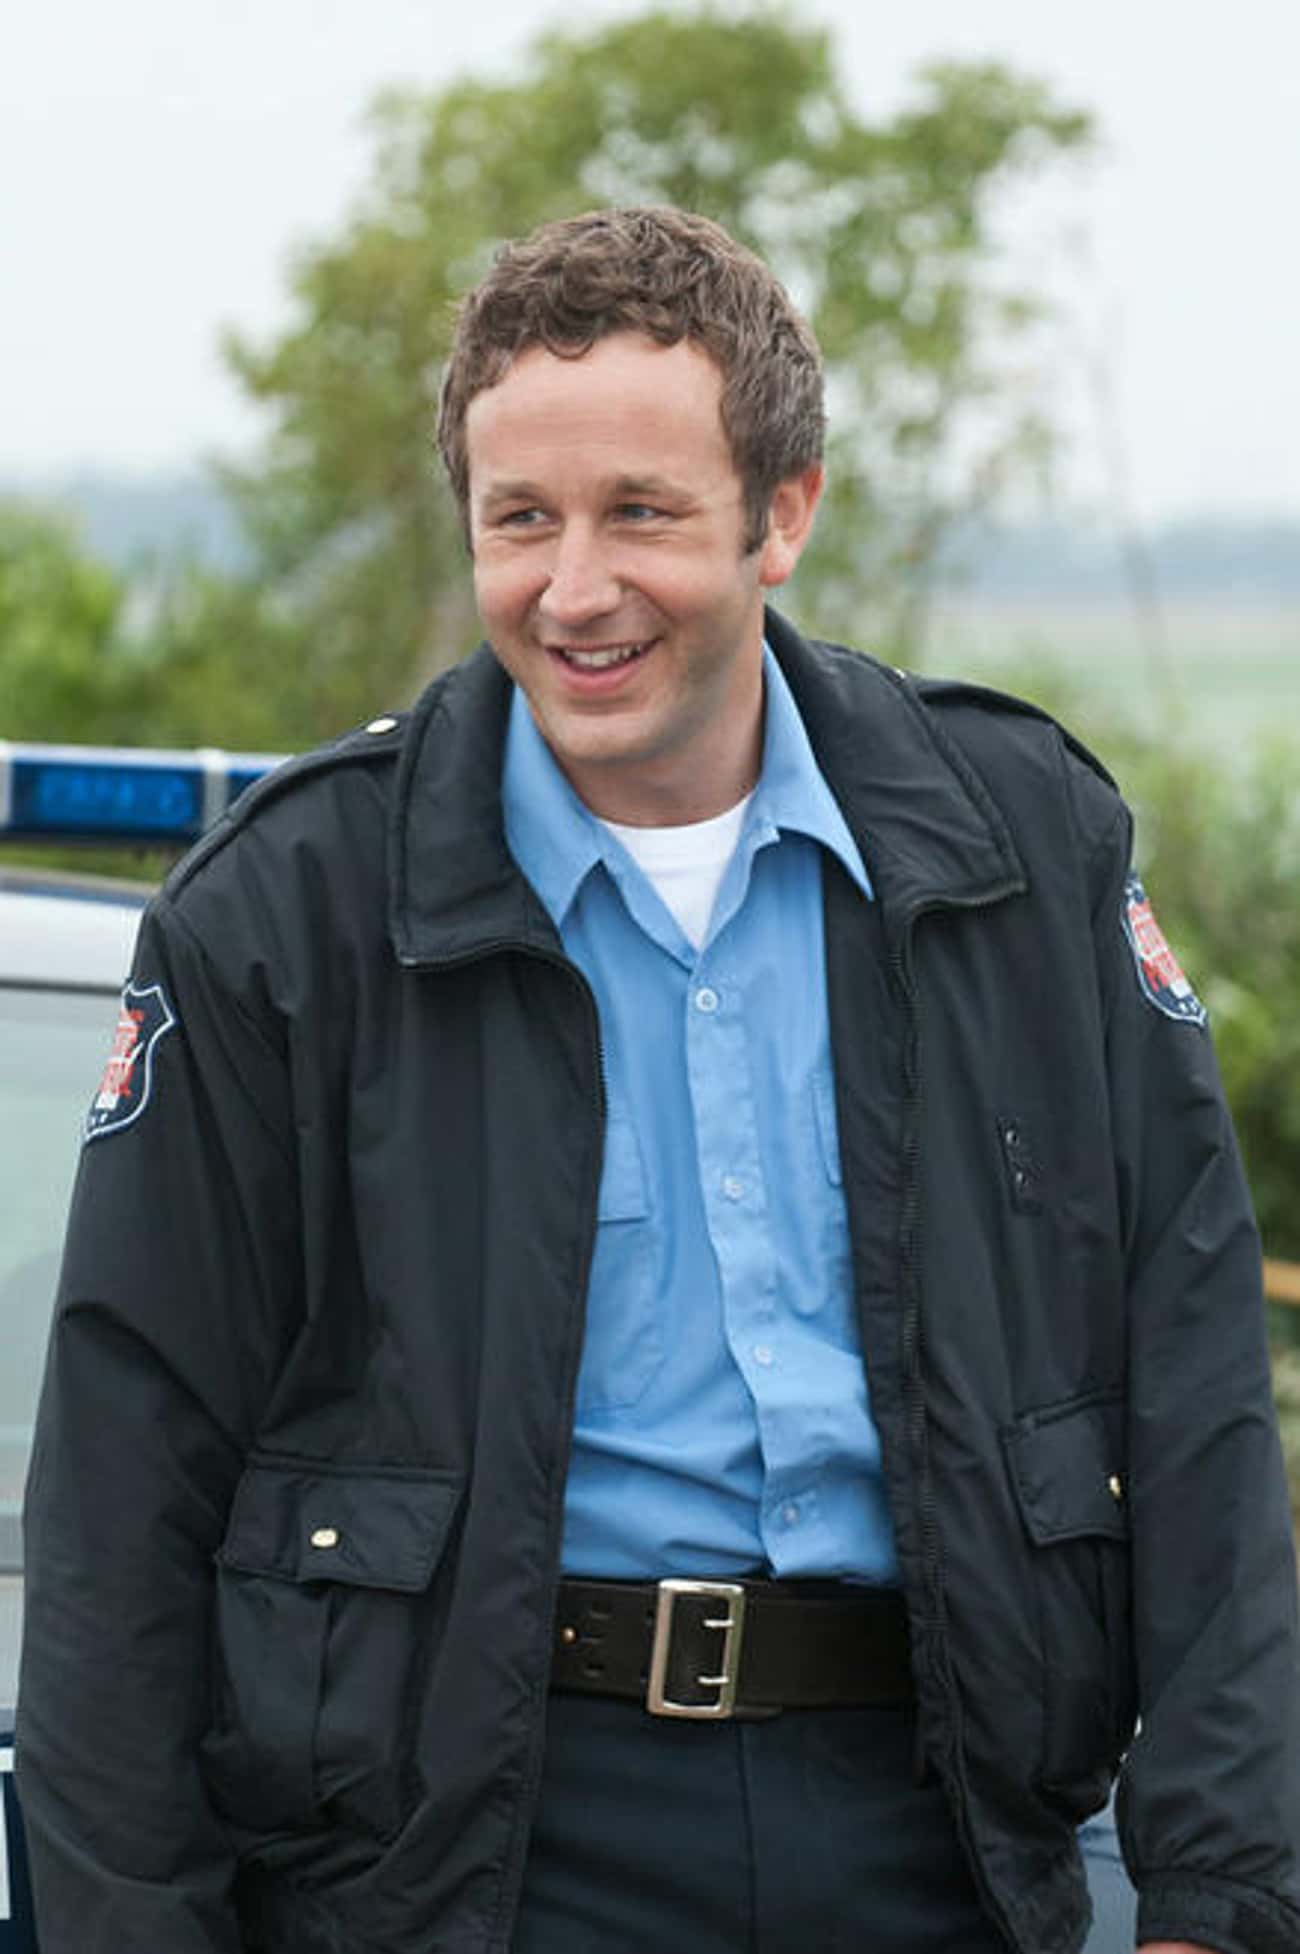 Chris O'Dowd in Police Office Jacket